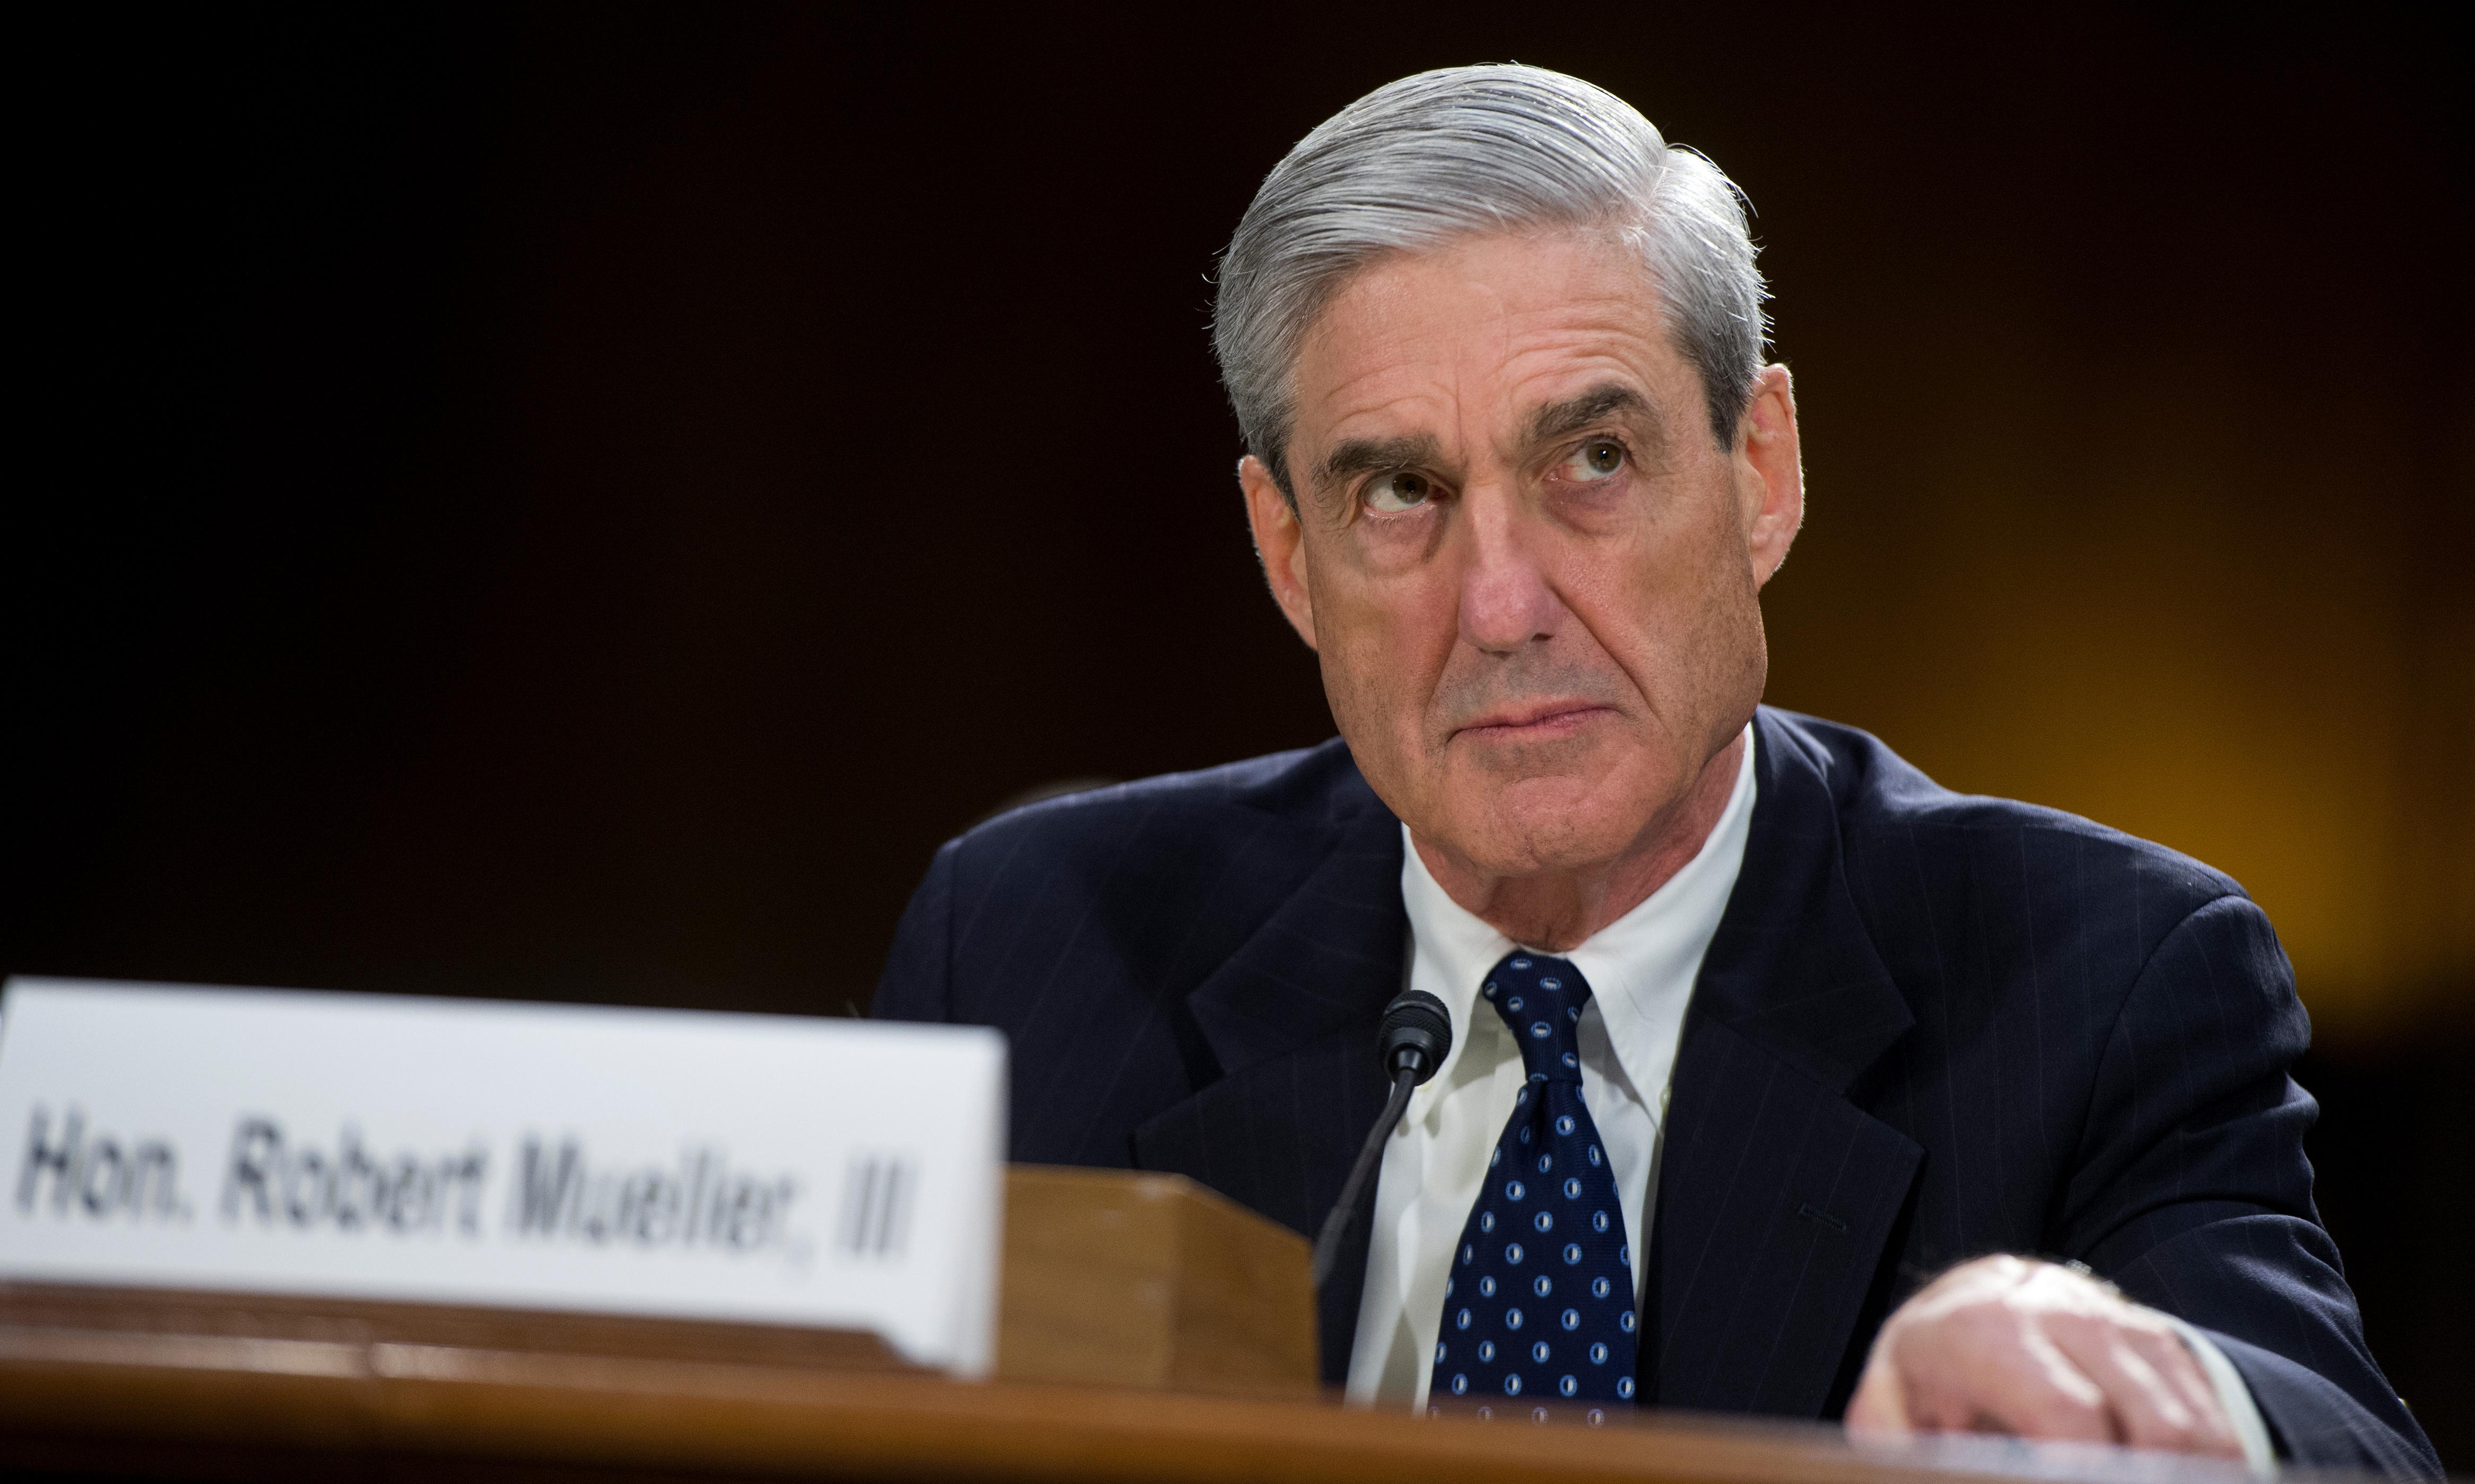 Trump's tweets show how rattled he is by Mueller's findings